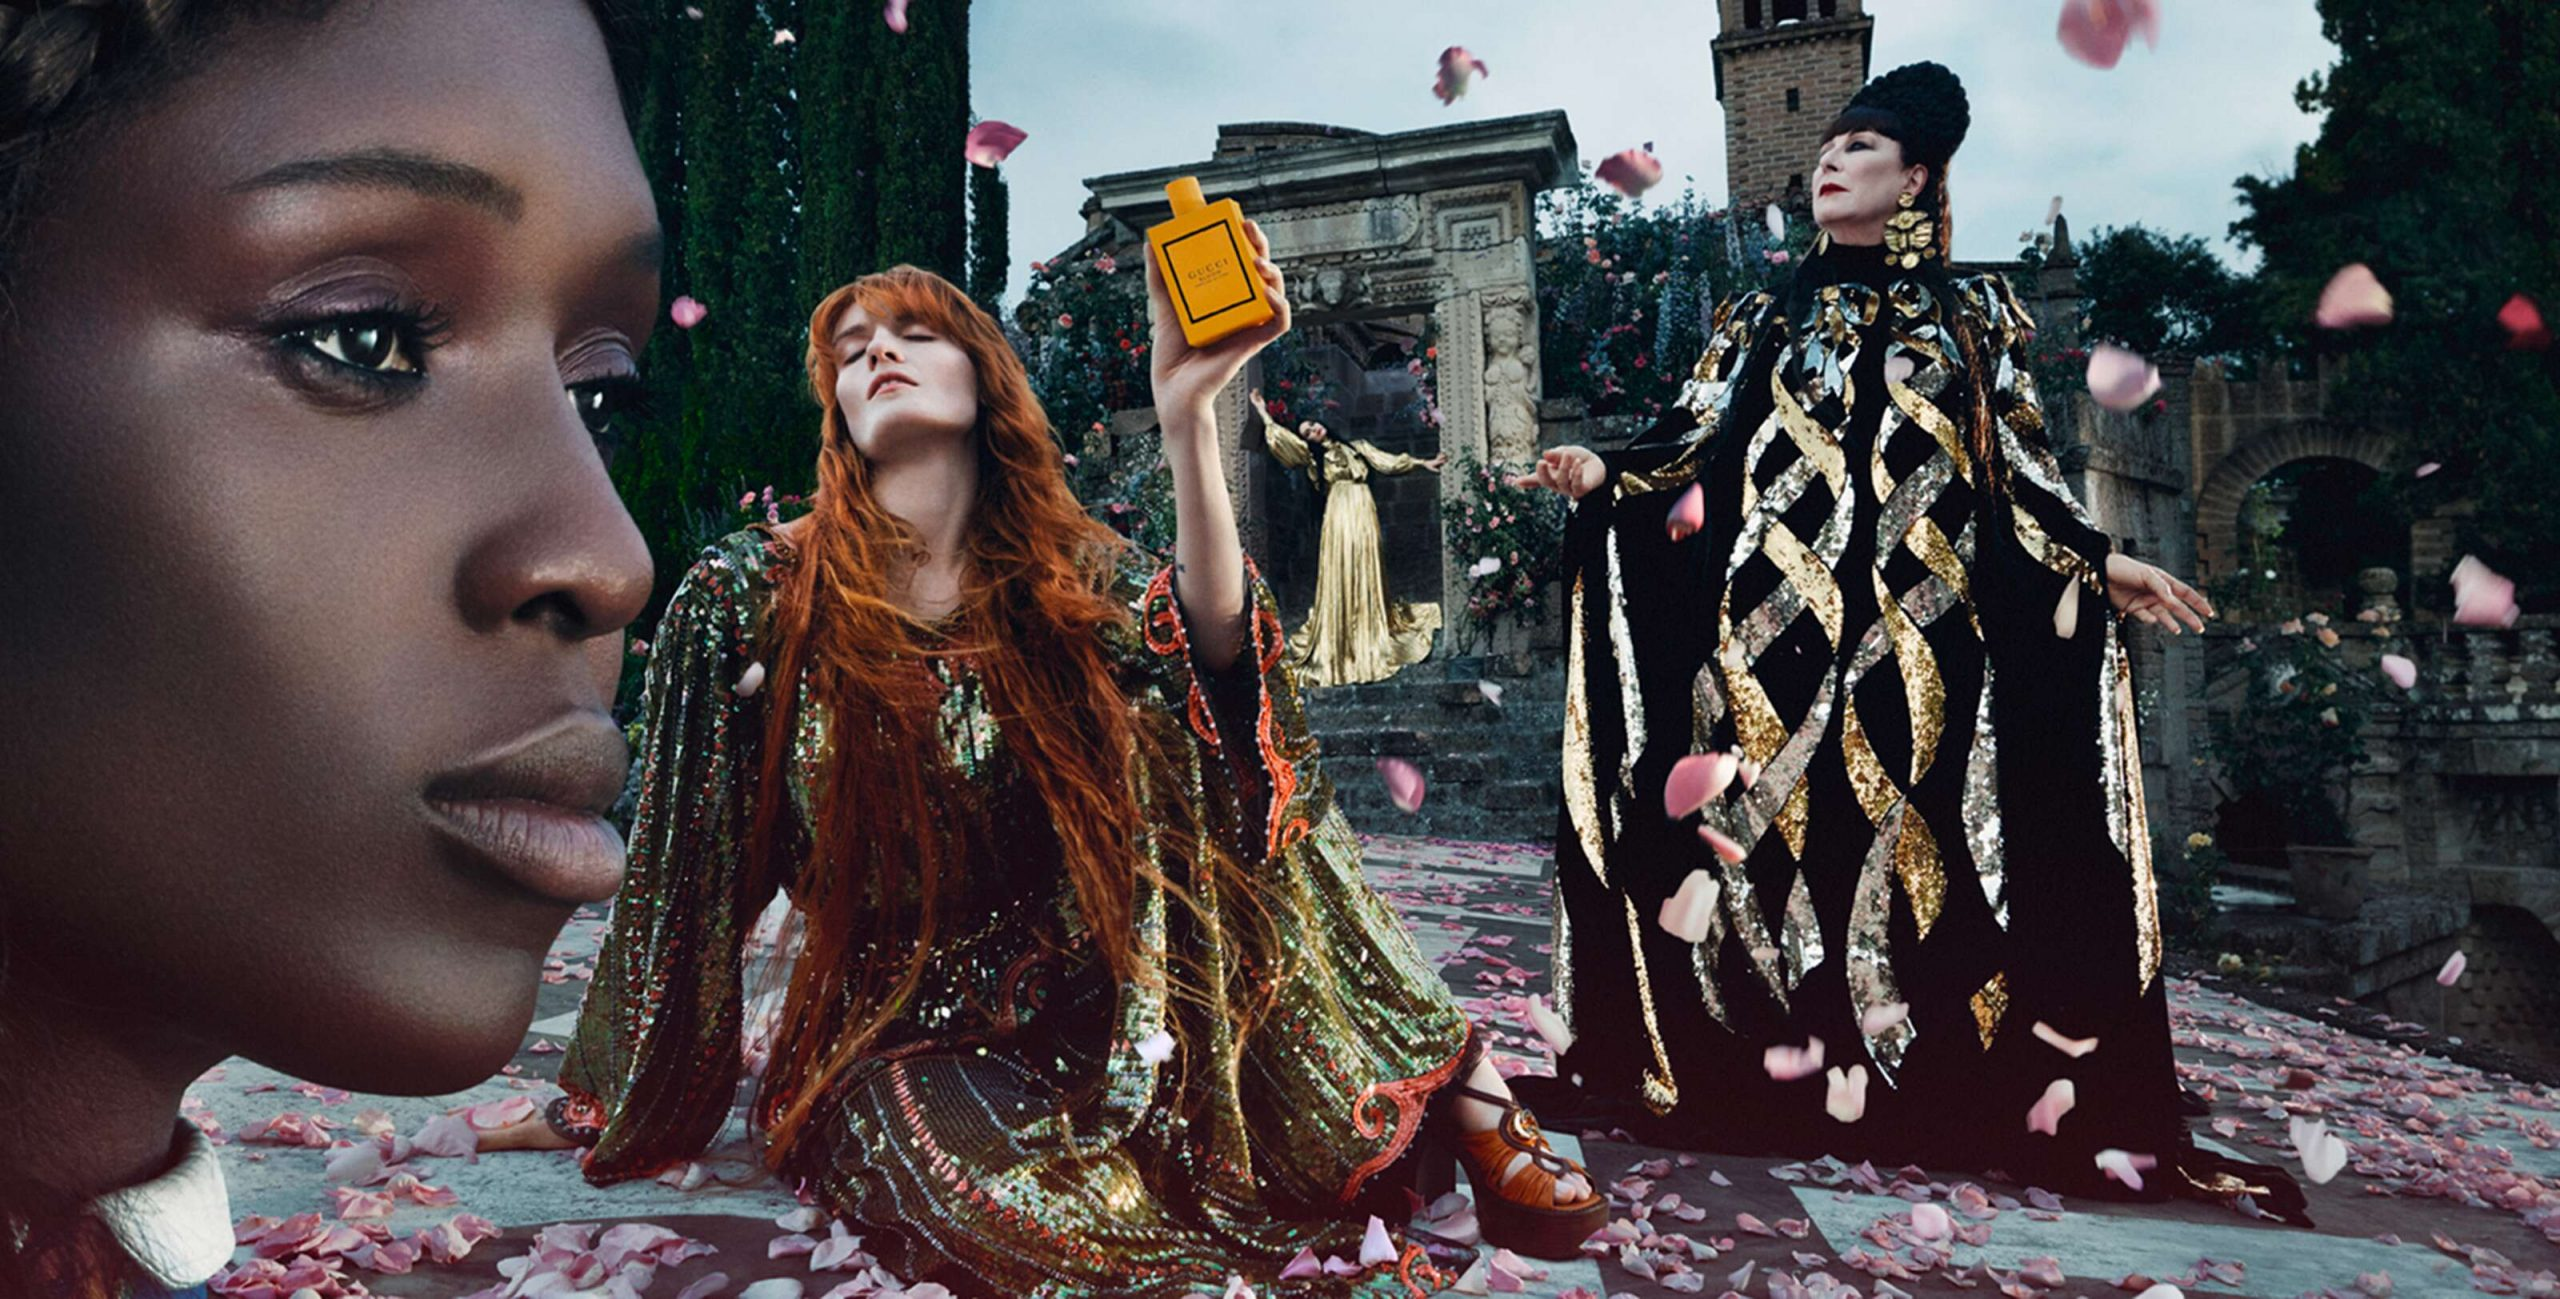 Gucci Bloom Fragrance Campaign with Anjelica Huston, Florence Welch, Jodie Turner-Smith & Susie Cave Film & Photos